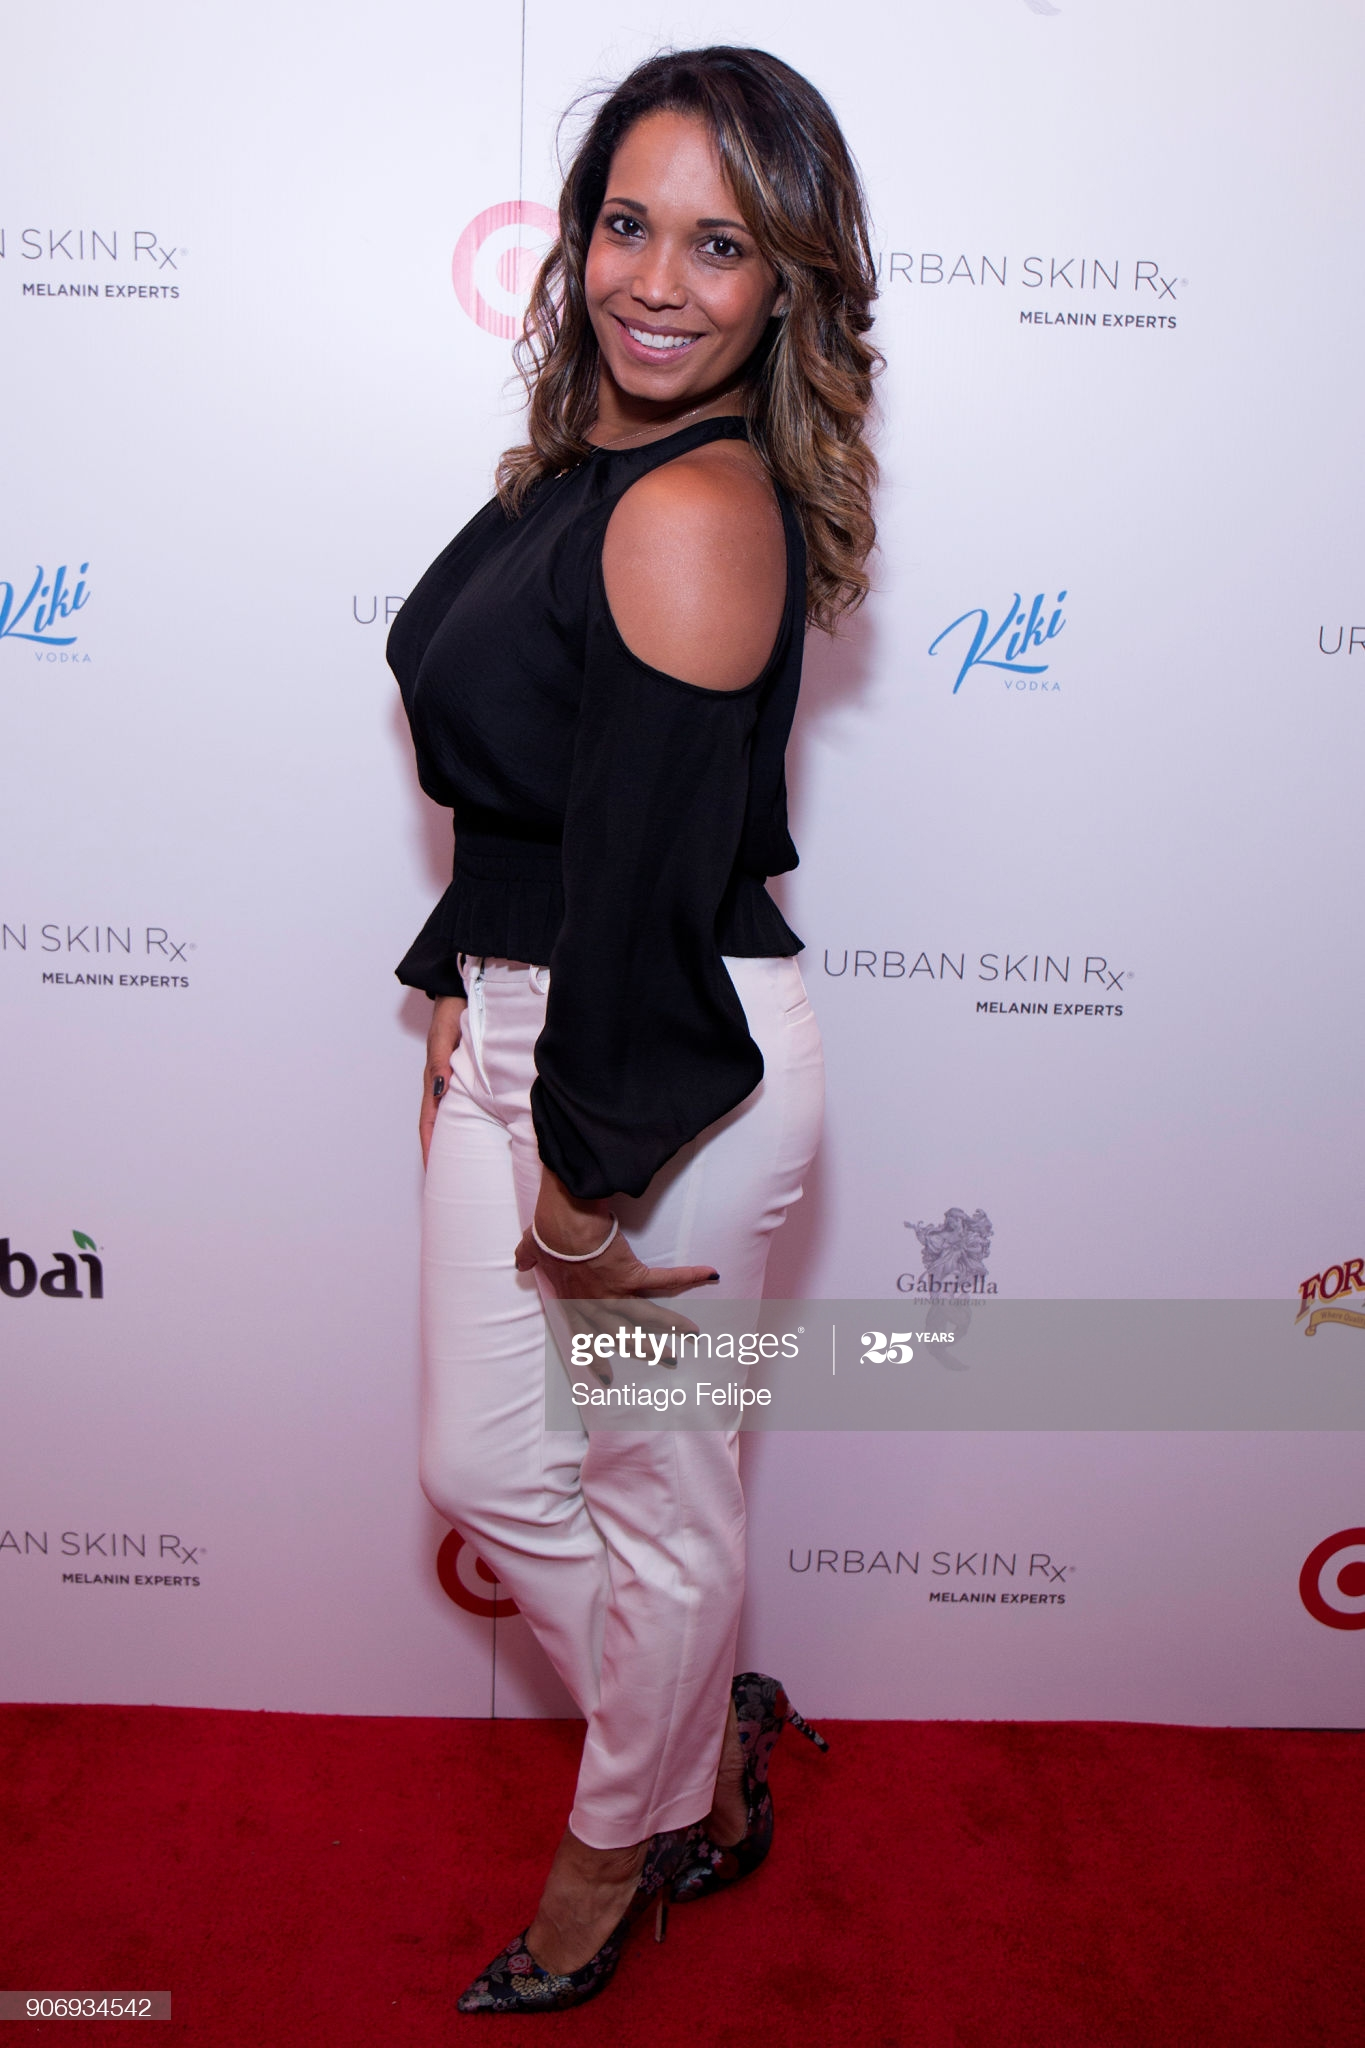 gettyimages-906934542-2048×2048